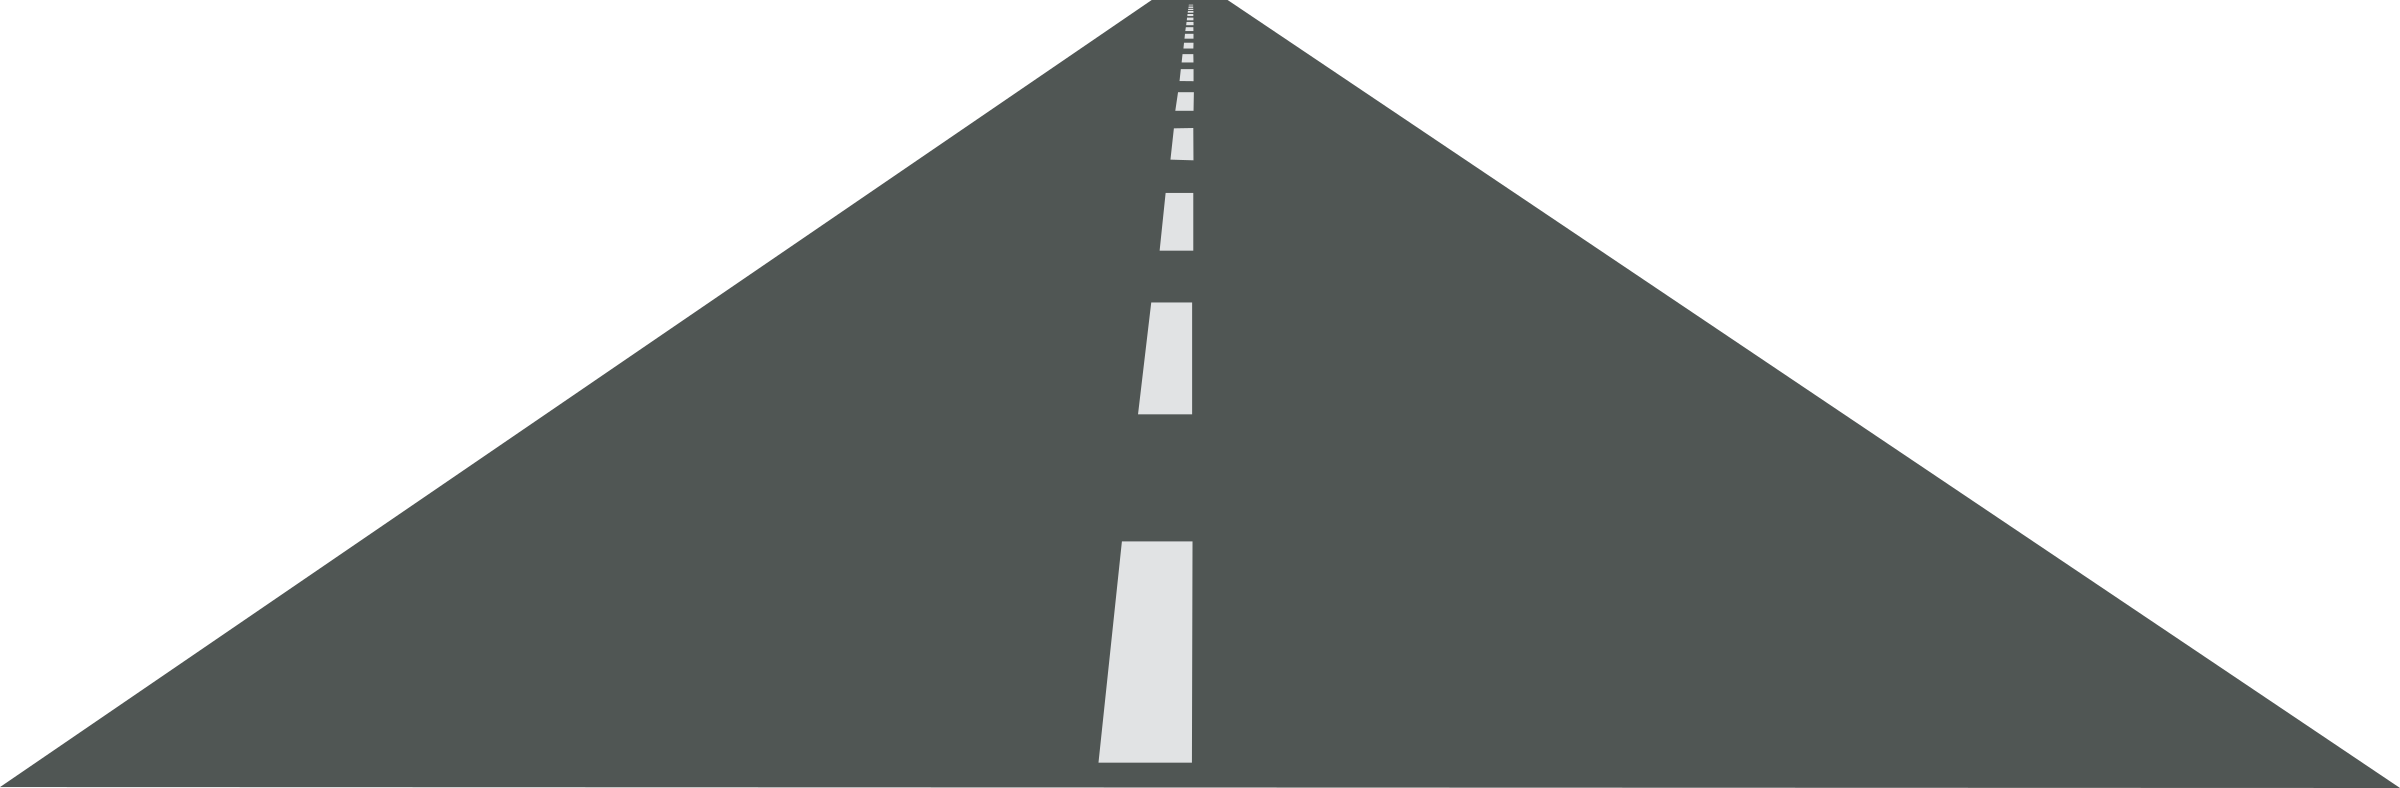 png library library Road clip art free. Roads clipart.